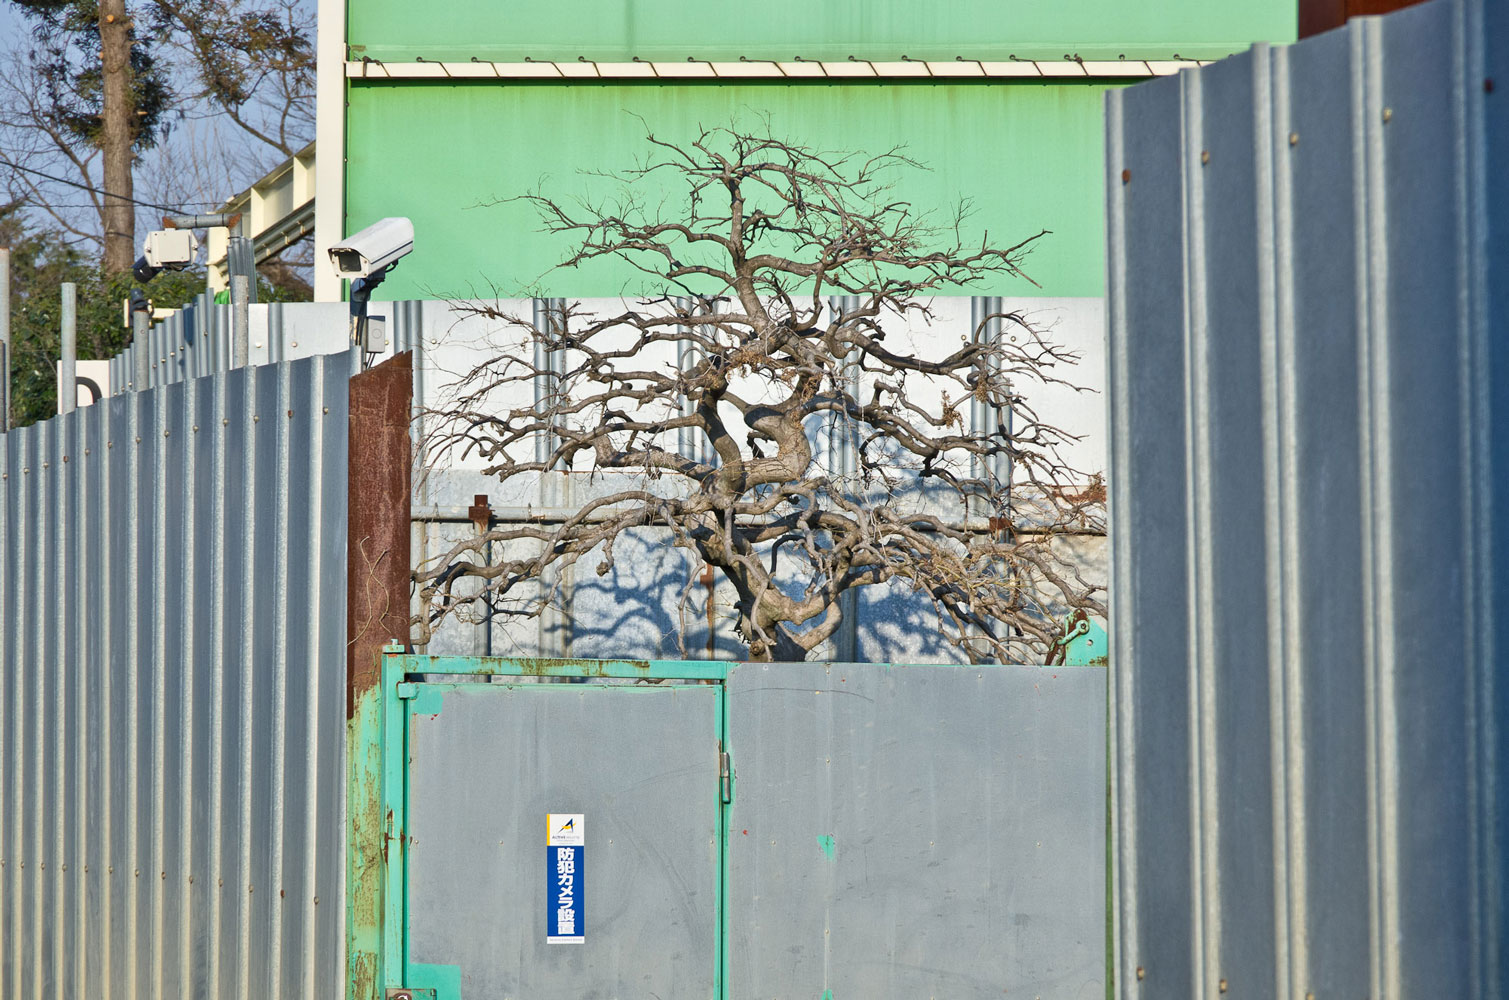 The entrance tree of the junkyard, Kawagoe, Saitama, 2013